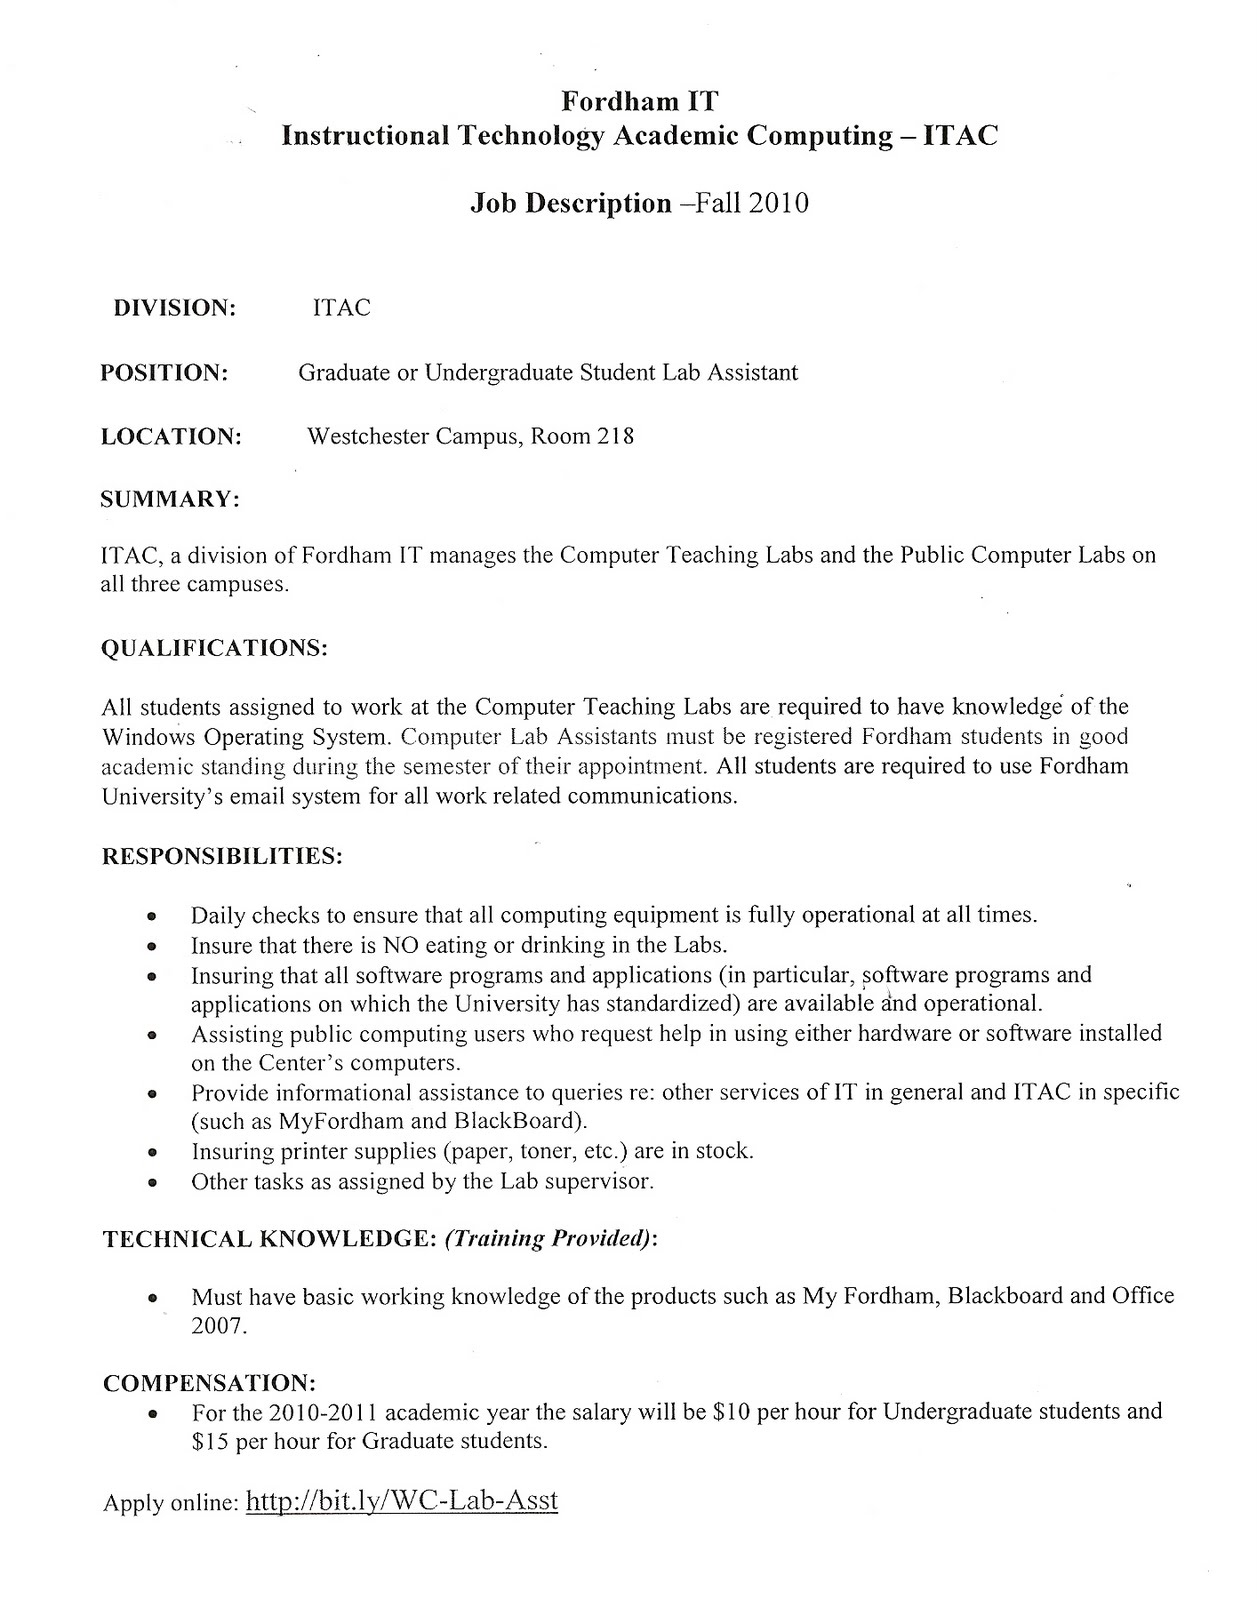 resume building for students profesional resume for job resume building for students resume templates lmsw exam prep bundle available in library for students wishing